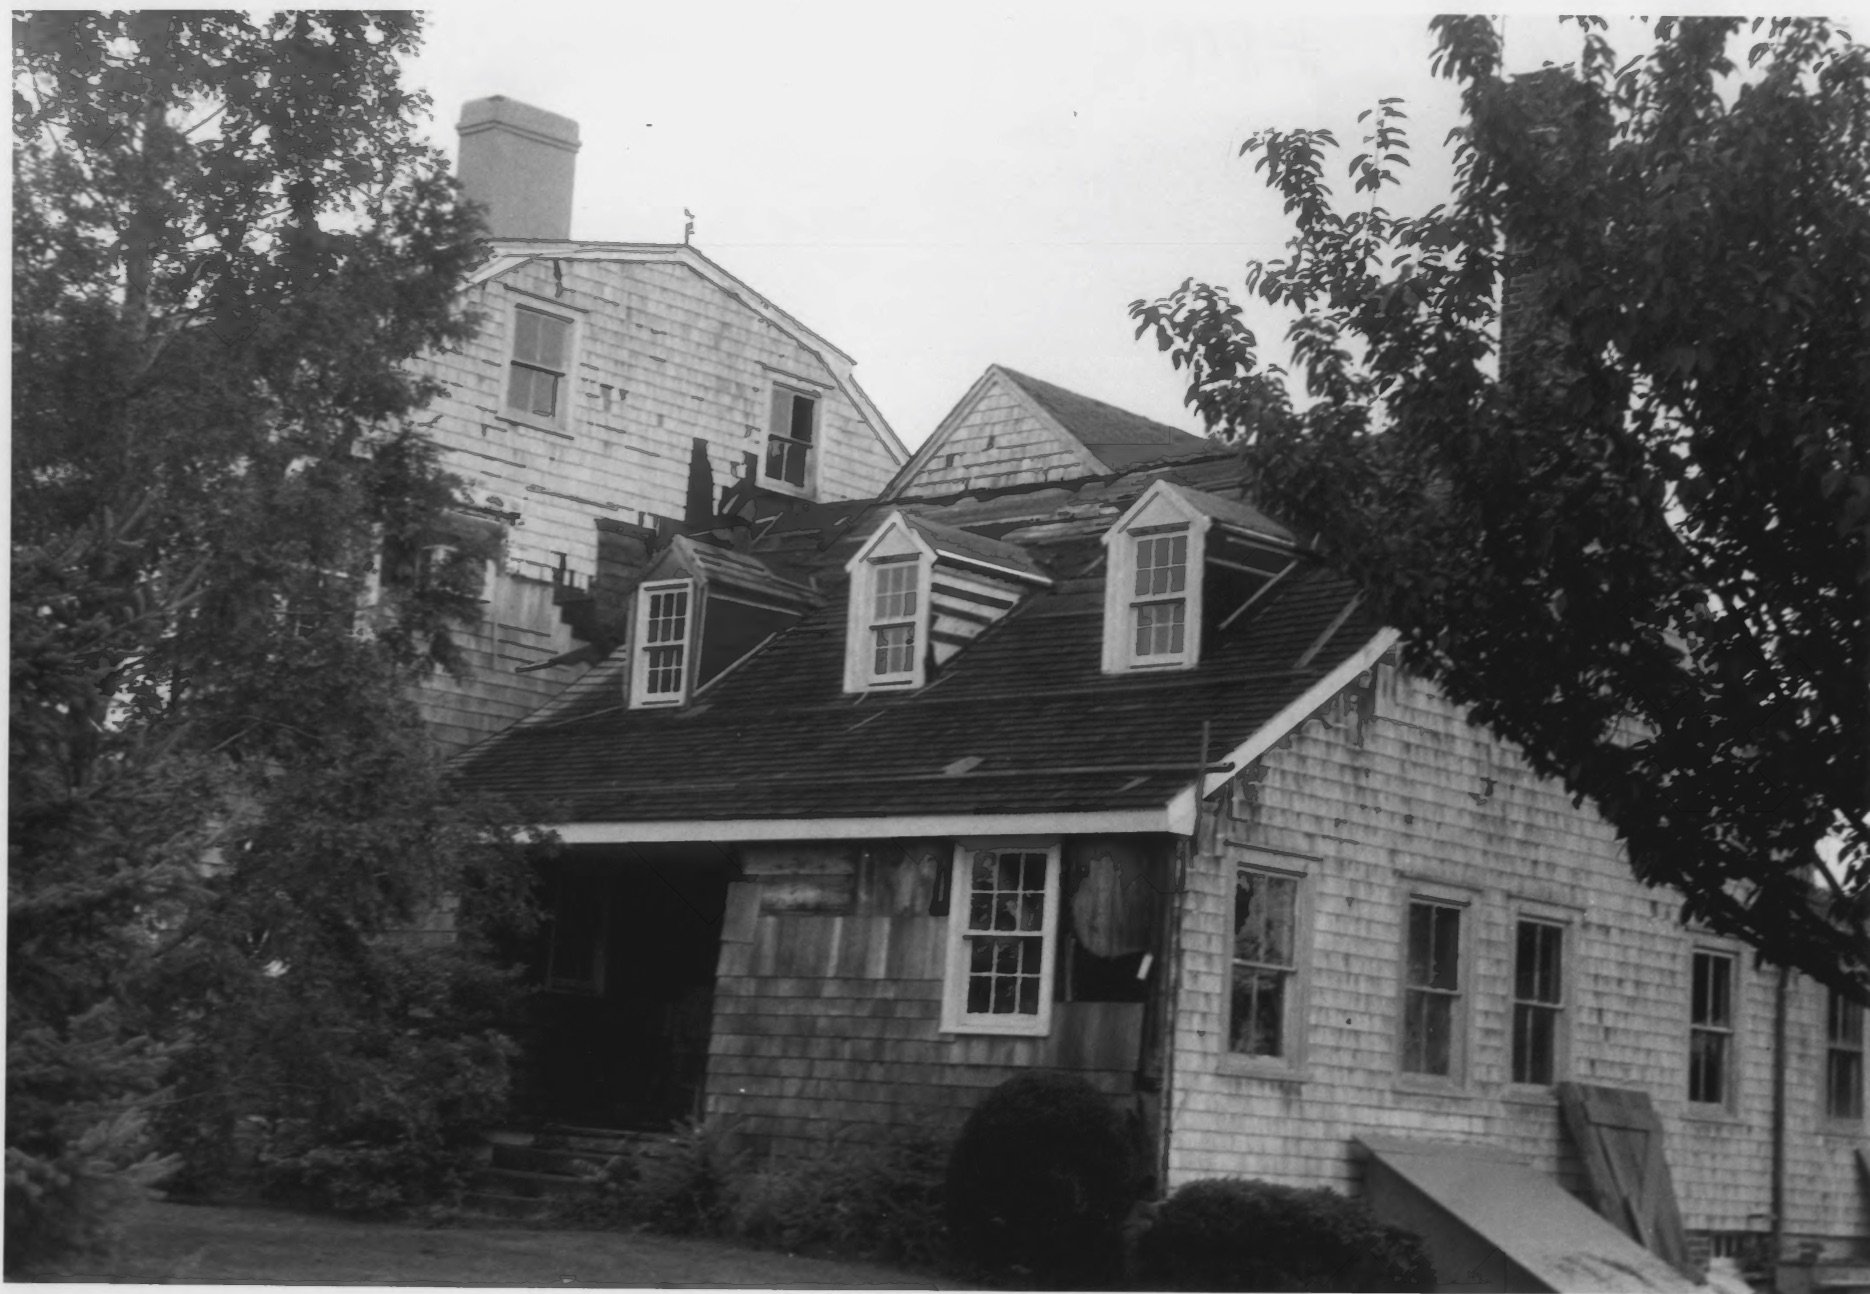 Older Section of the Cove Island House in 1979 by D. Ransom, Part of the NPS NRHP Photographic Collection on the Cove House